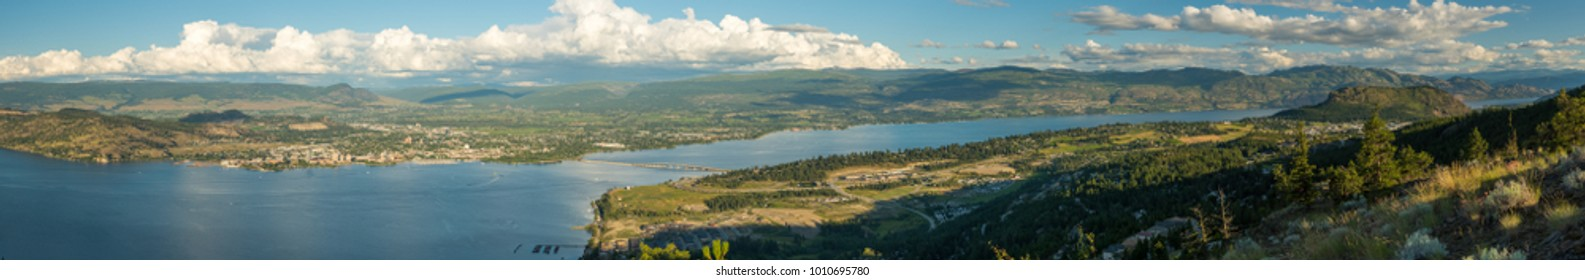 British Columbia, Canada.  Panoramic view of the city of Kelowna, and Okanagan Lake and Valley in summer as viewed from West Kelowna.